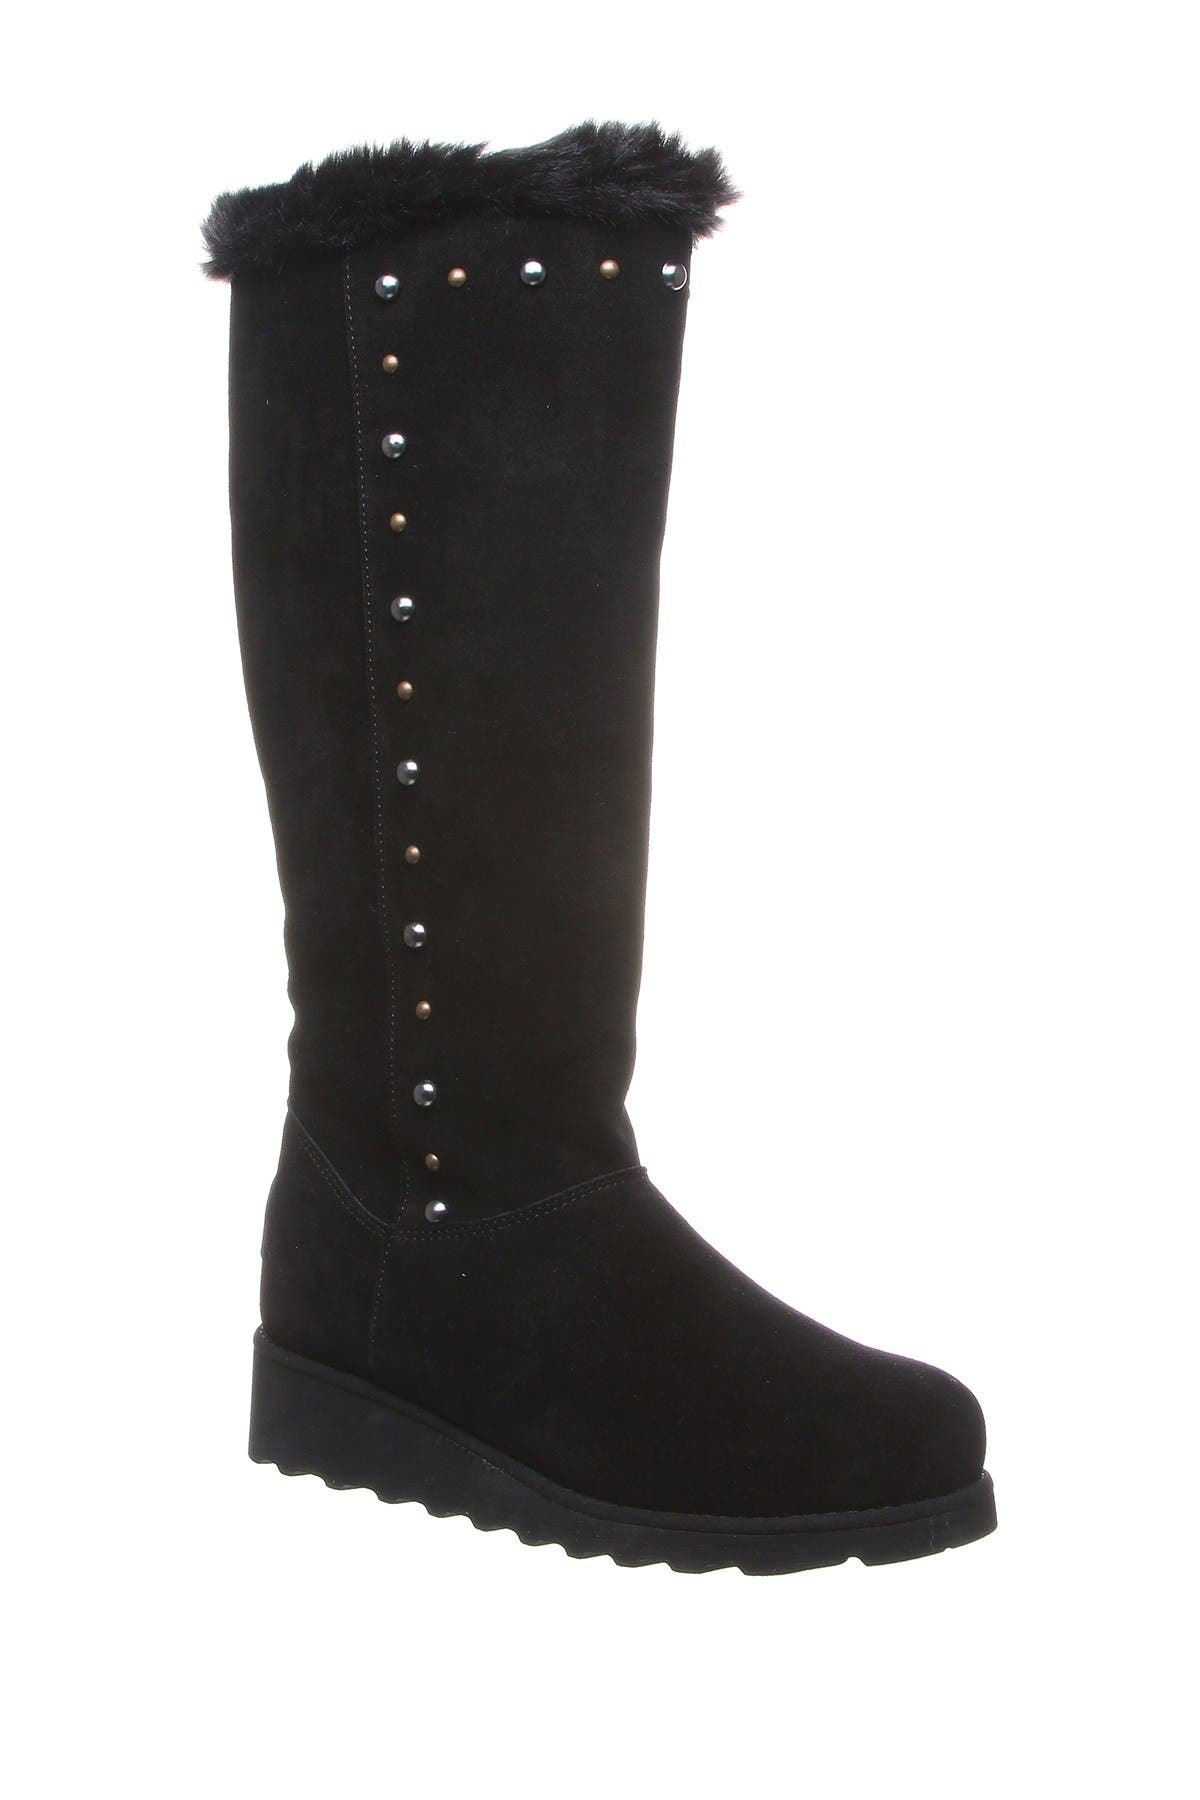 Image of BEARPAW Dorothy Stud Faux Fur Suede Tall Boot